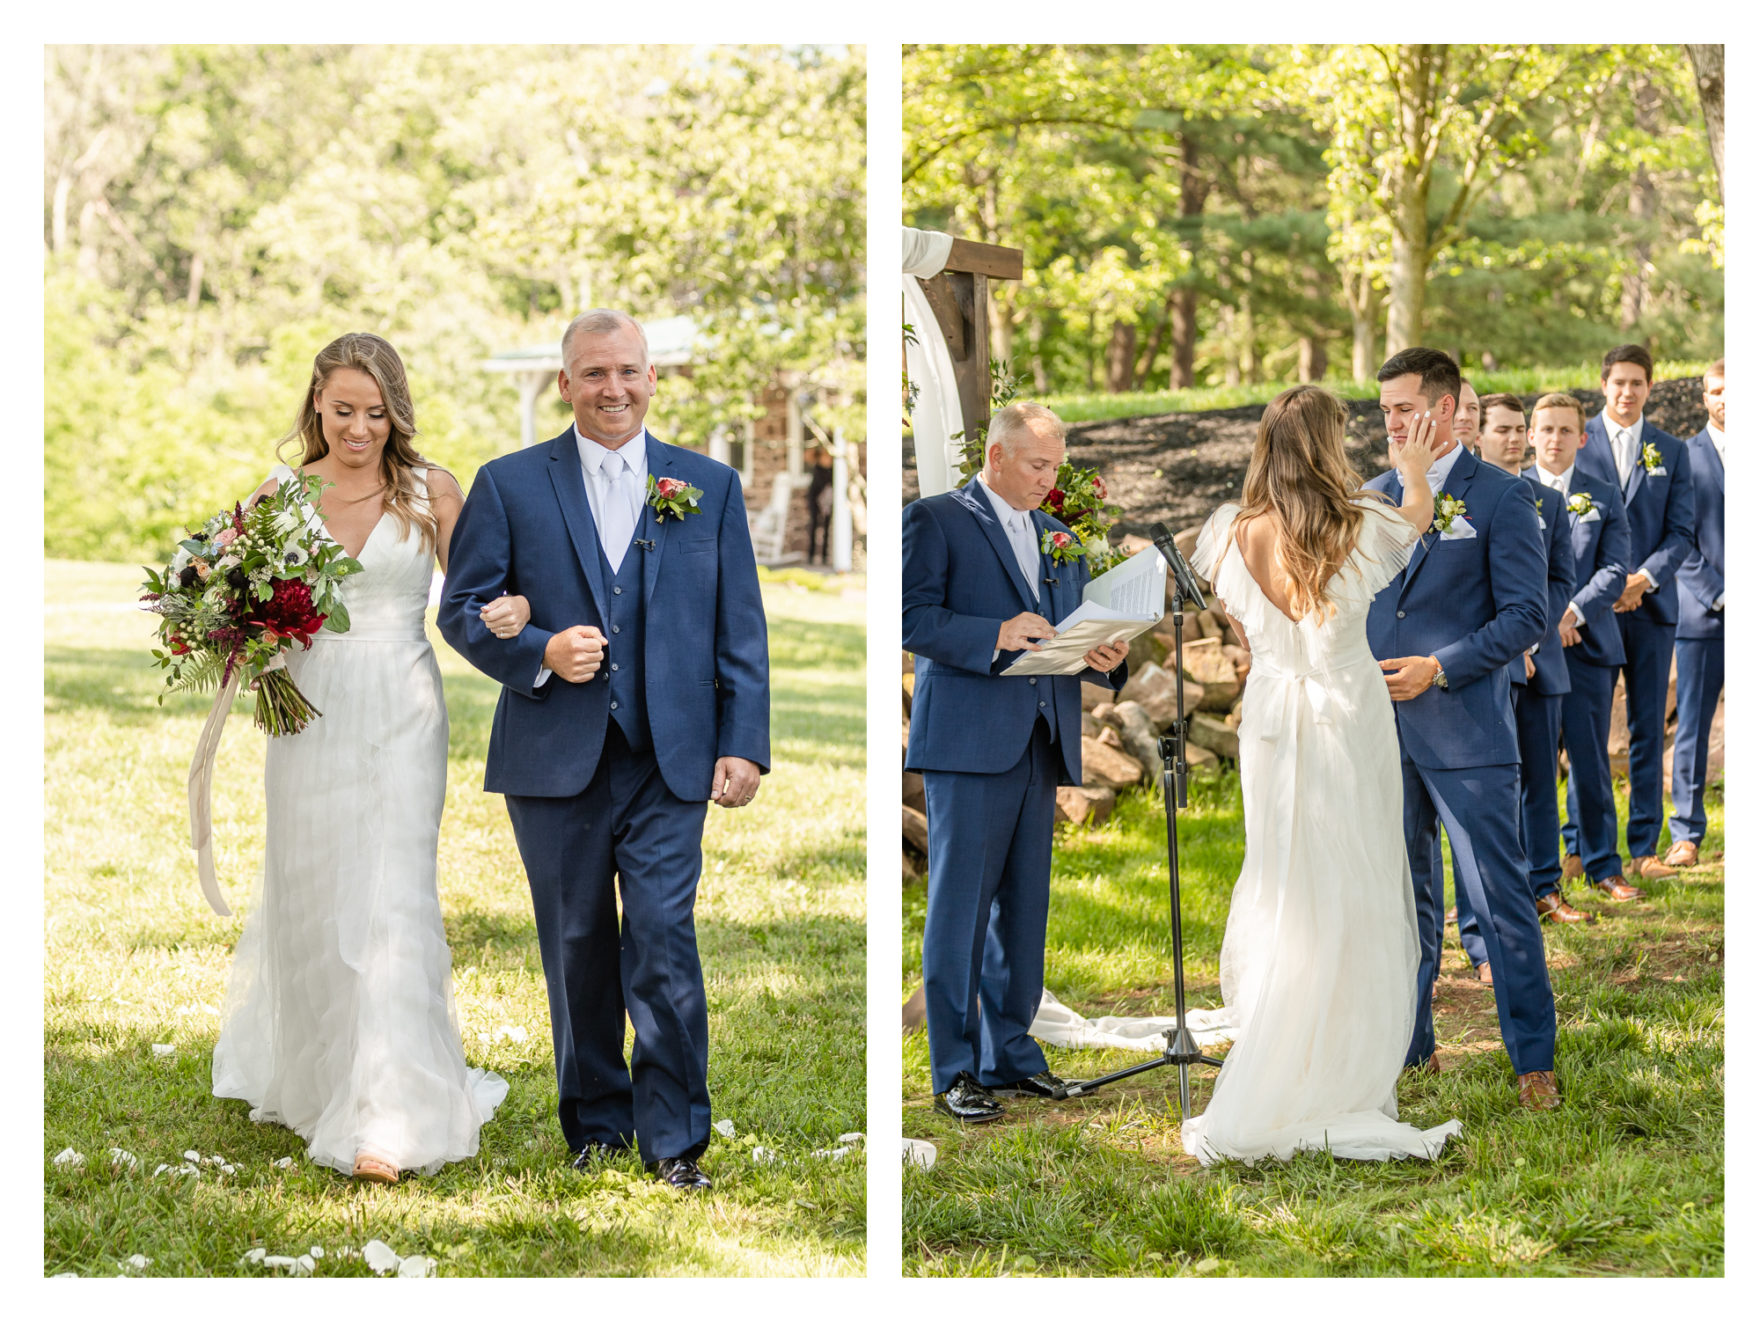 Summer wedding at a private residence farm in Westminster Carroll County Maryland. Cicadas, cows and dogs at the wedding. Pond view ceremony